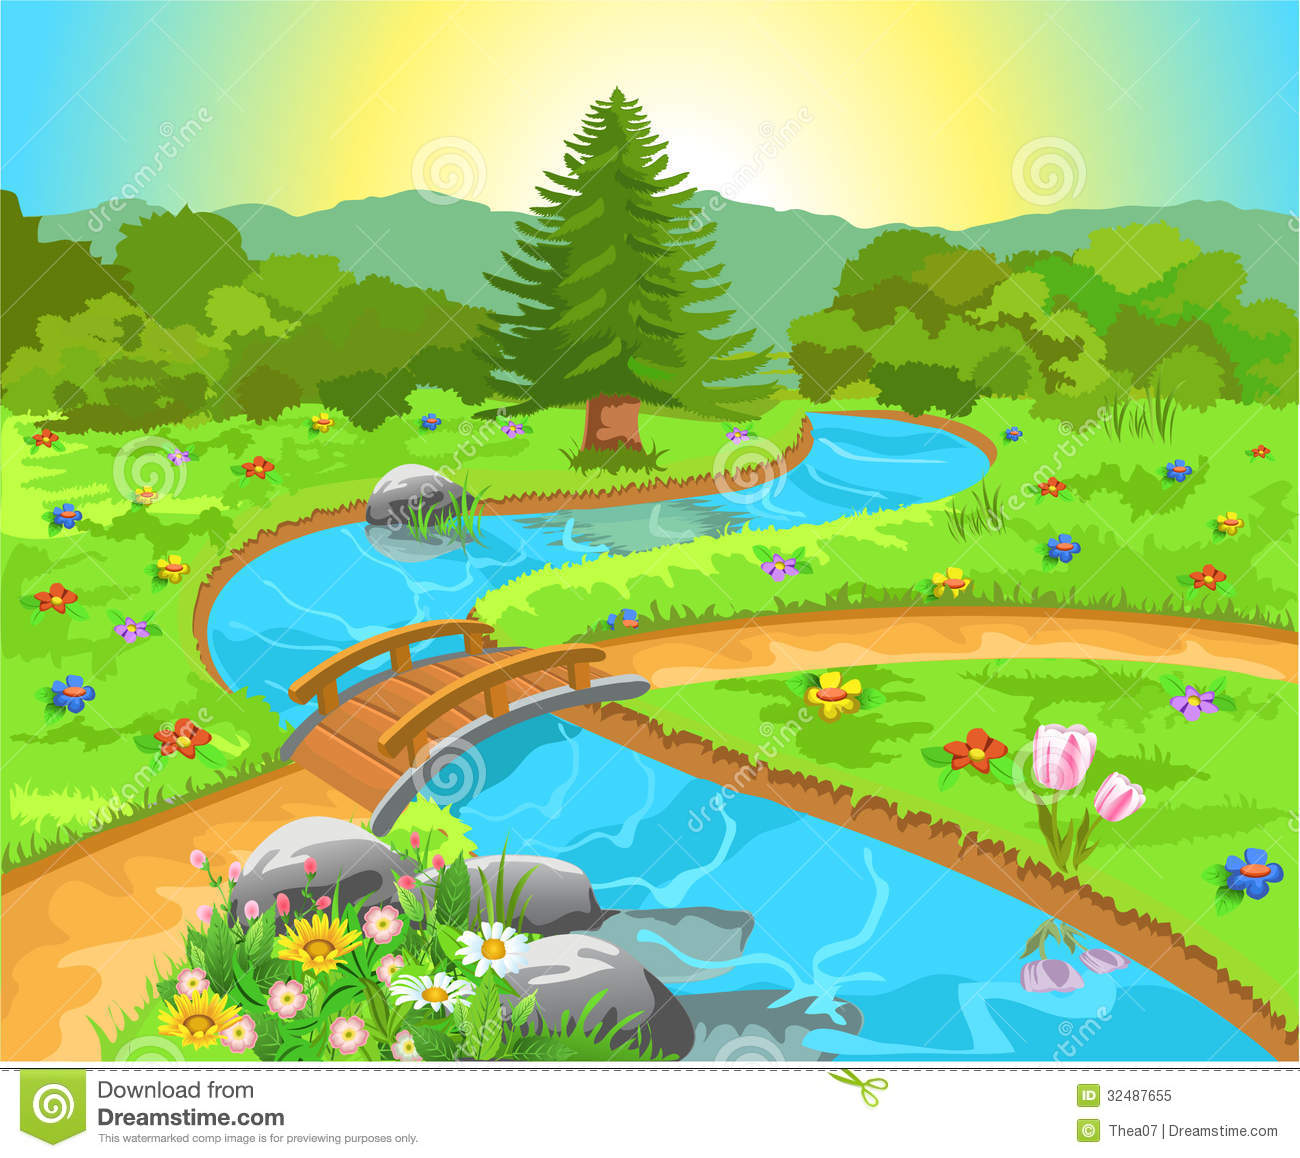 Wilderness clipart spring water Spring Nature Scenes Landscape Clipart